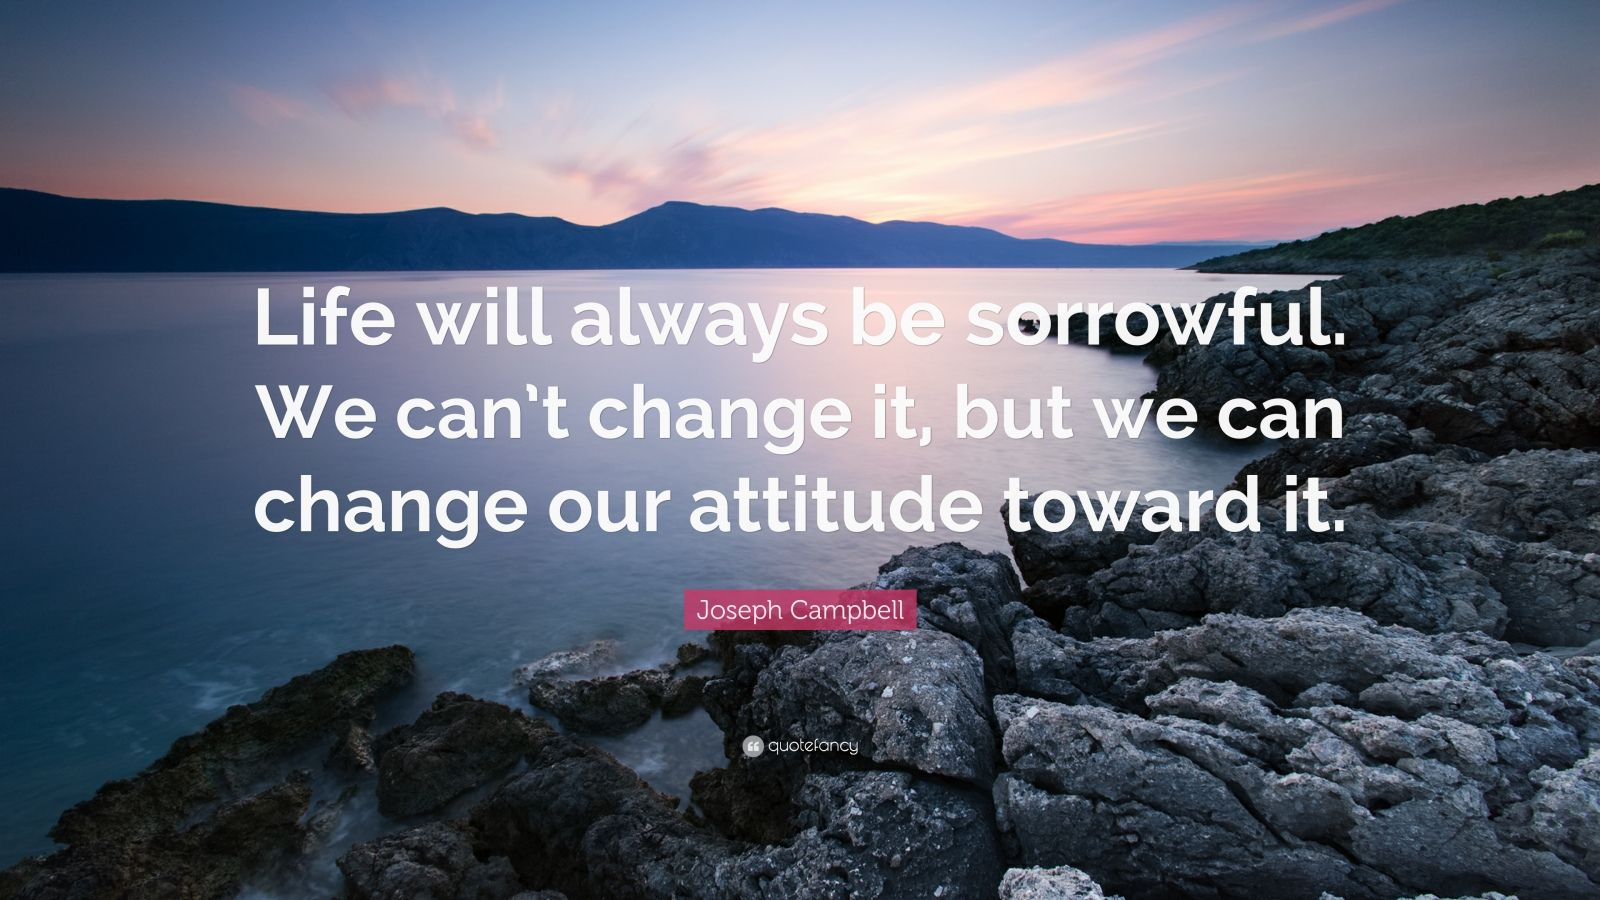 """Joseph Campbell Quote: """"Life will always be sorrowful. We can't change it, but we can change our attitude toward it."""""""